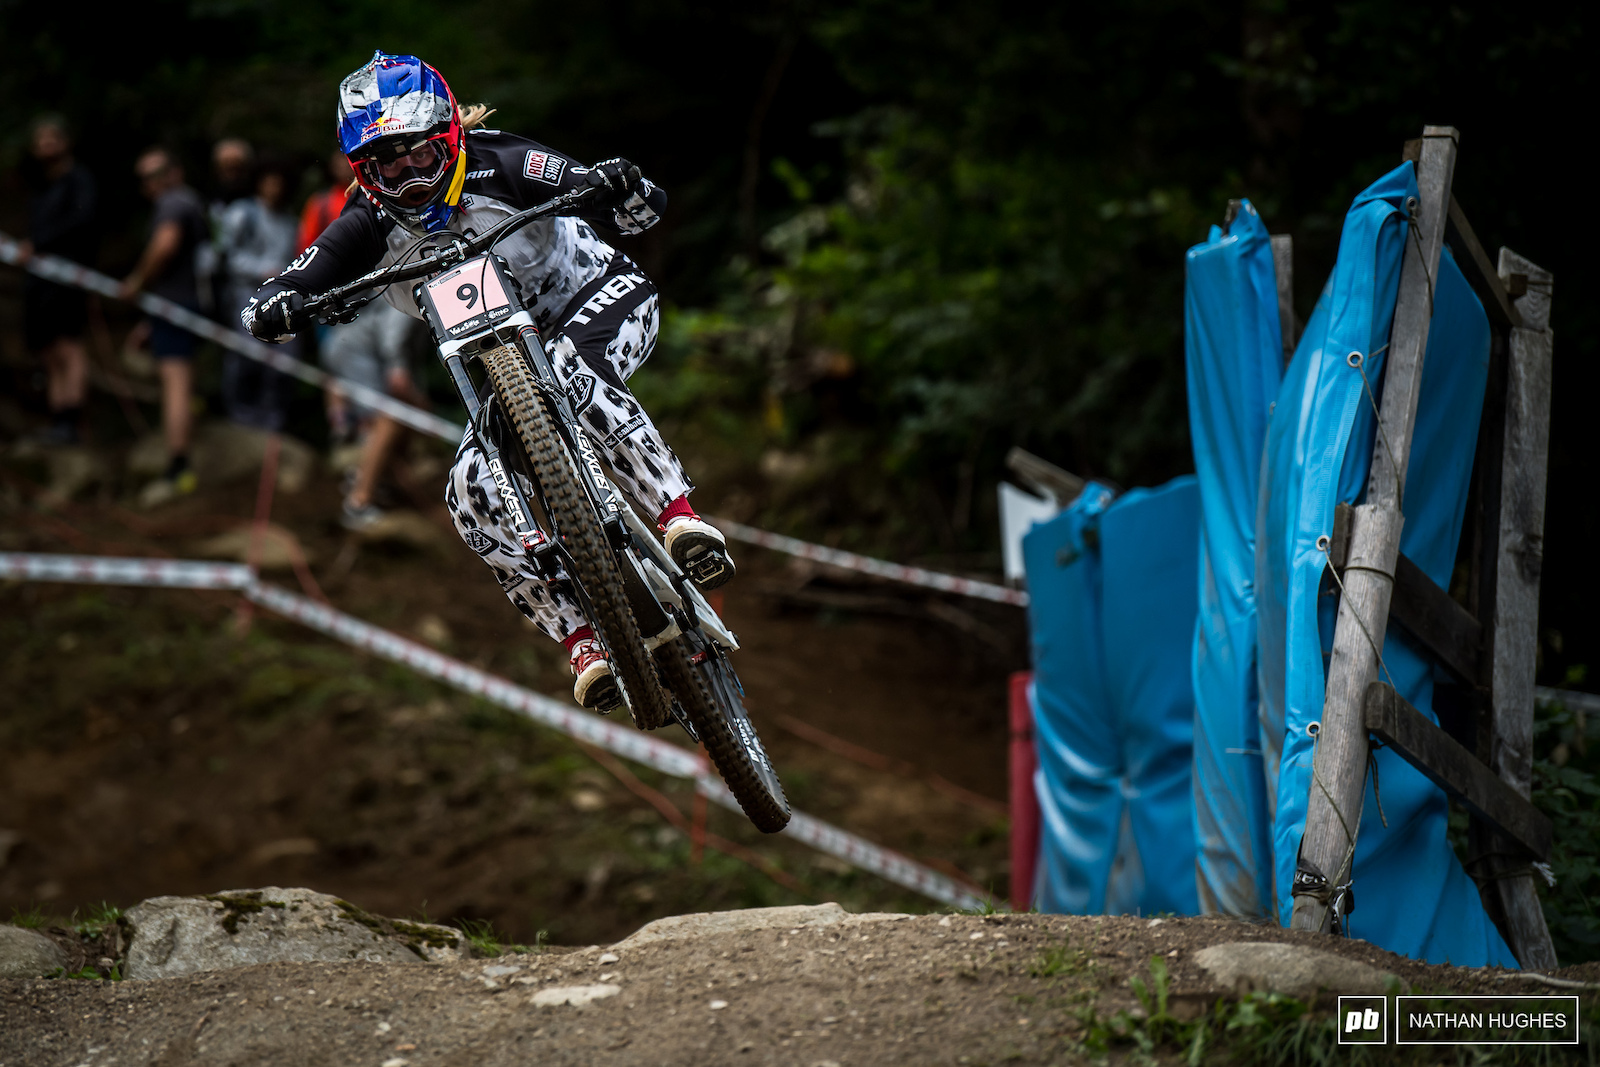 Top qualifier Valentina Holl fell foul of the slick track after a night of heavy rain mixed up conditions particularly for the womens race earlier in the afternoon.